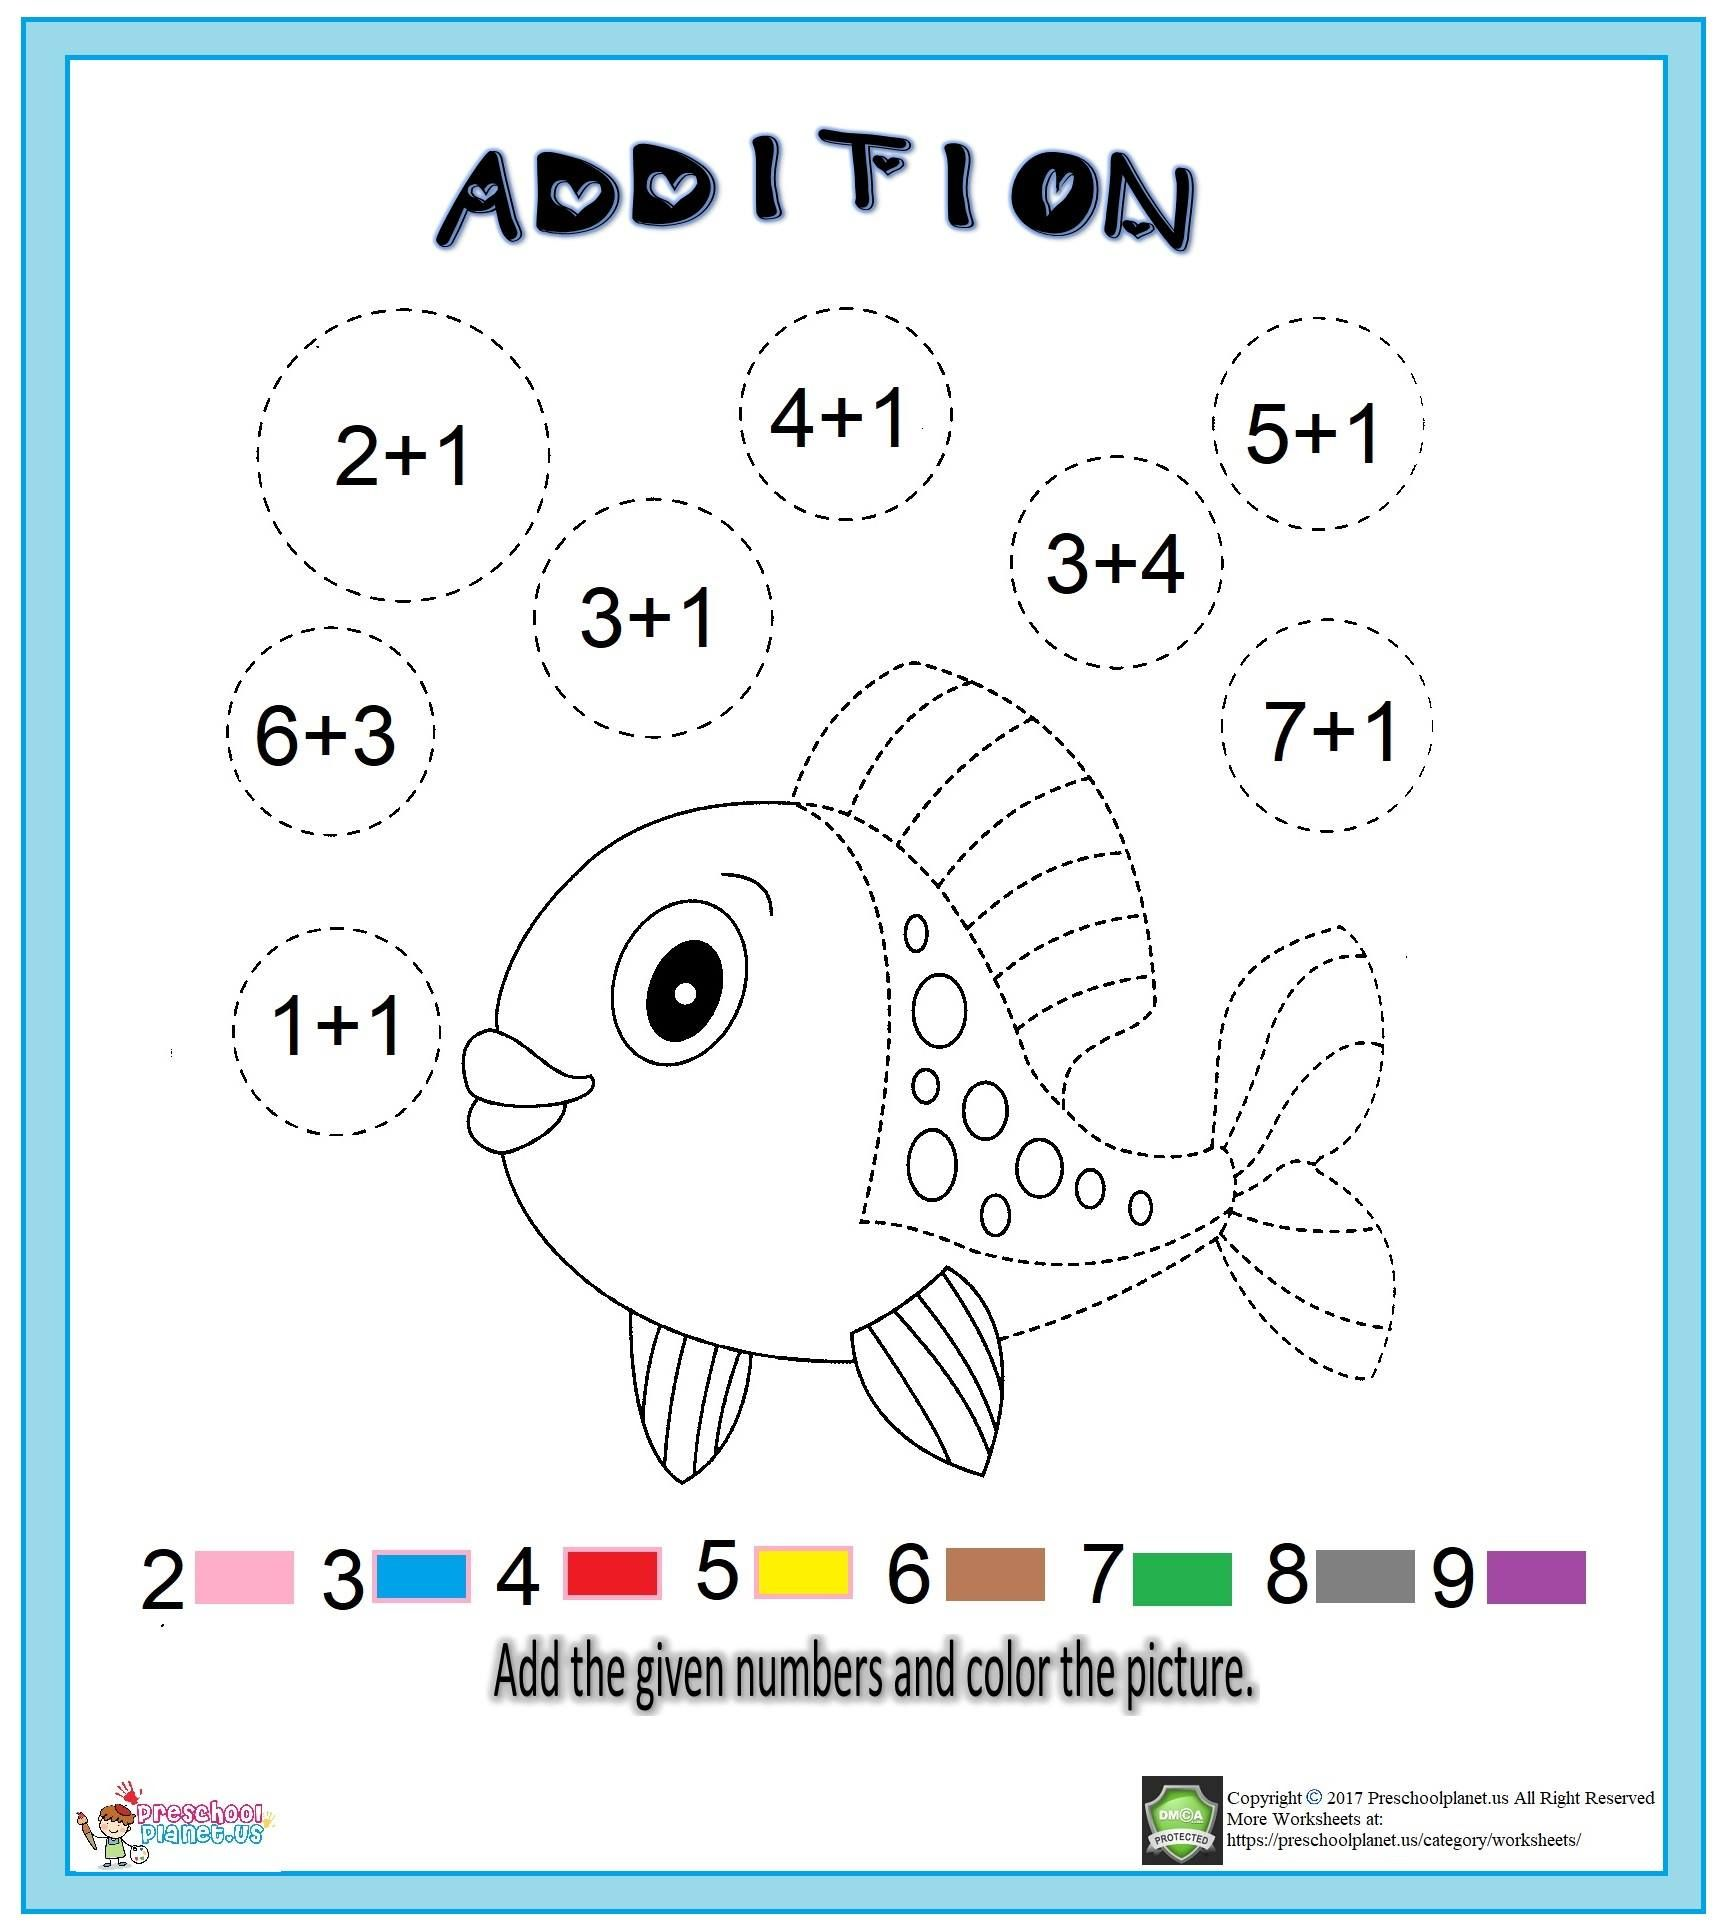 Addition Worksheet For Kids